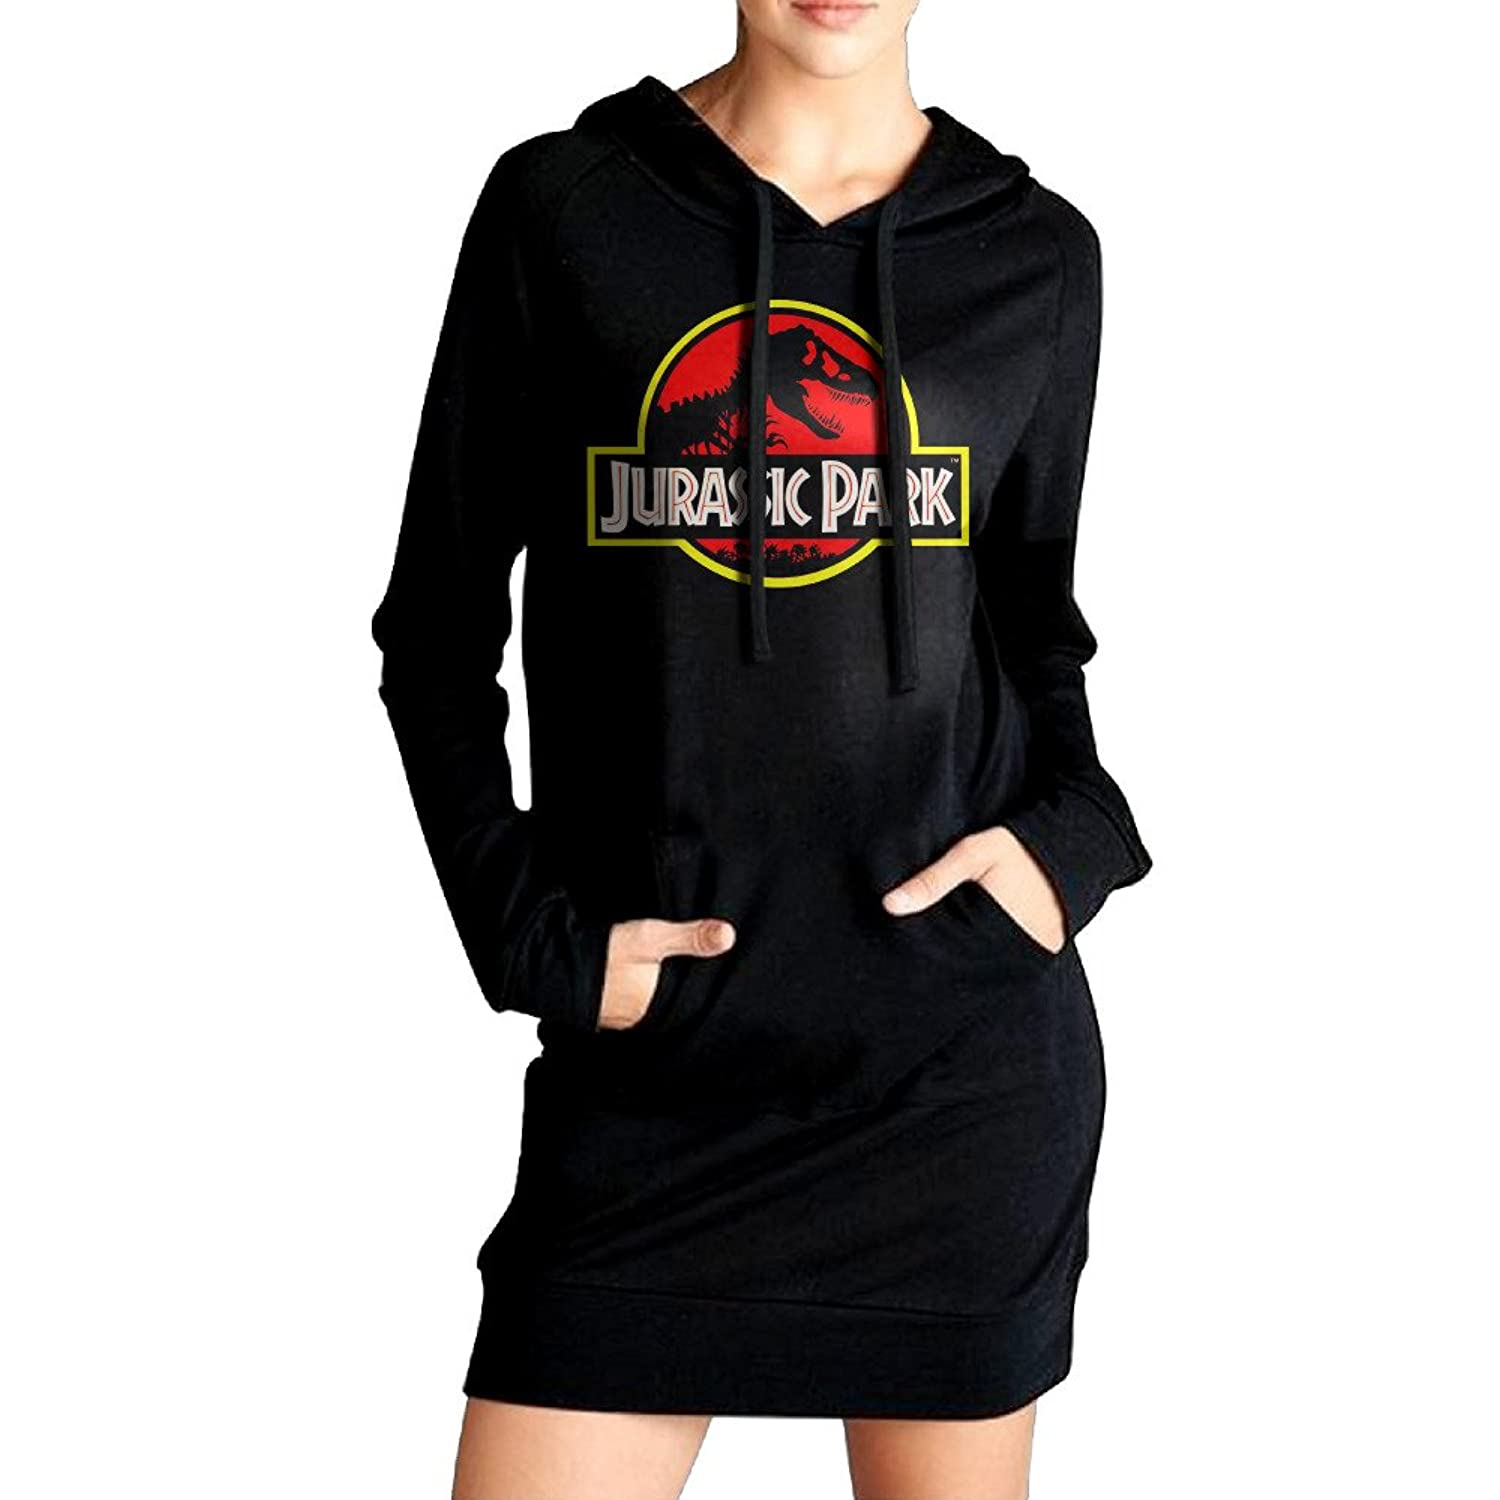 low-cost Jurassic Park Logo Women Long Sleeve Pocket Sweatshirt Hoodie